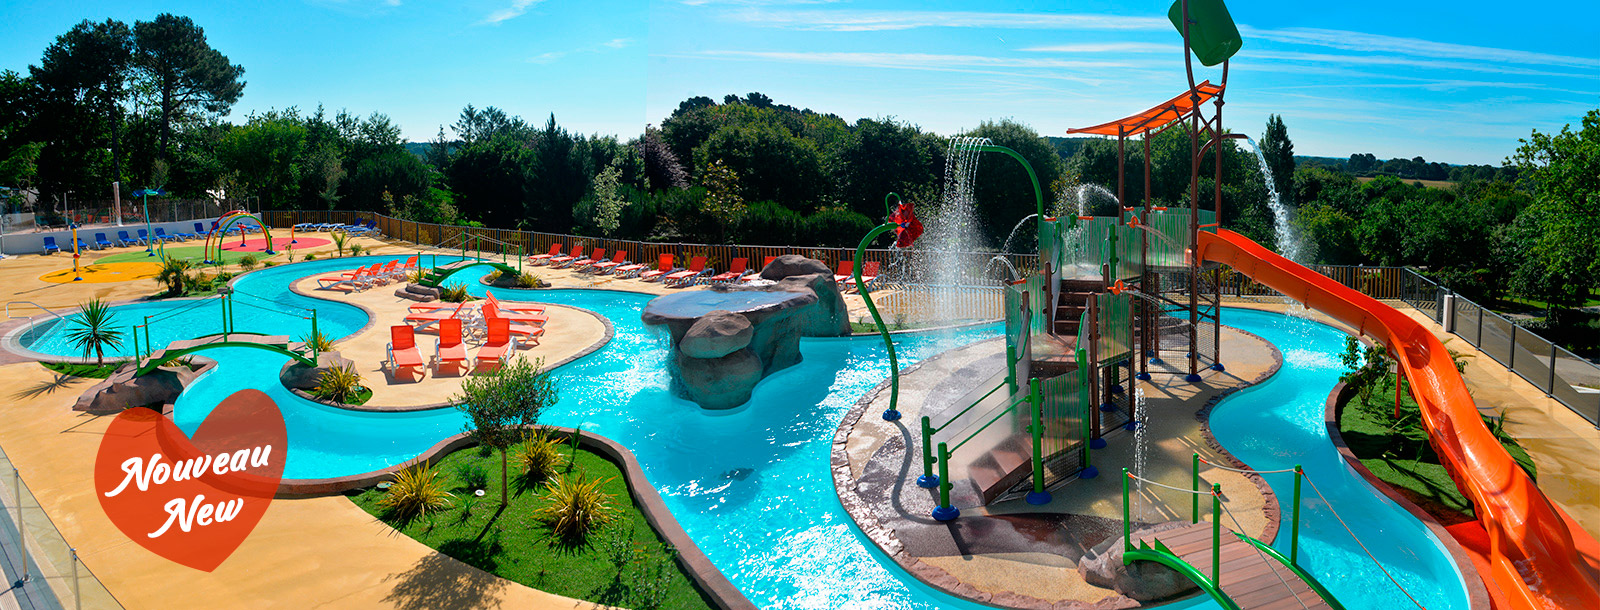 The Aquatic Park doubles its size for unforgettable holidays!